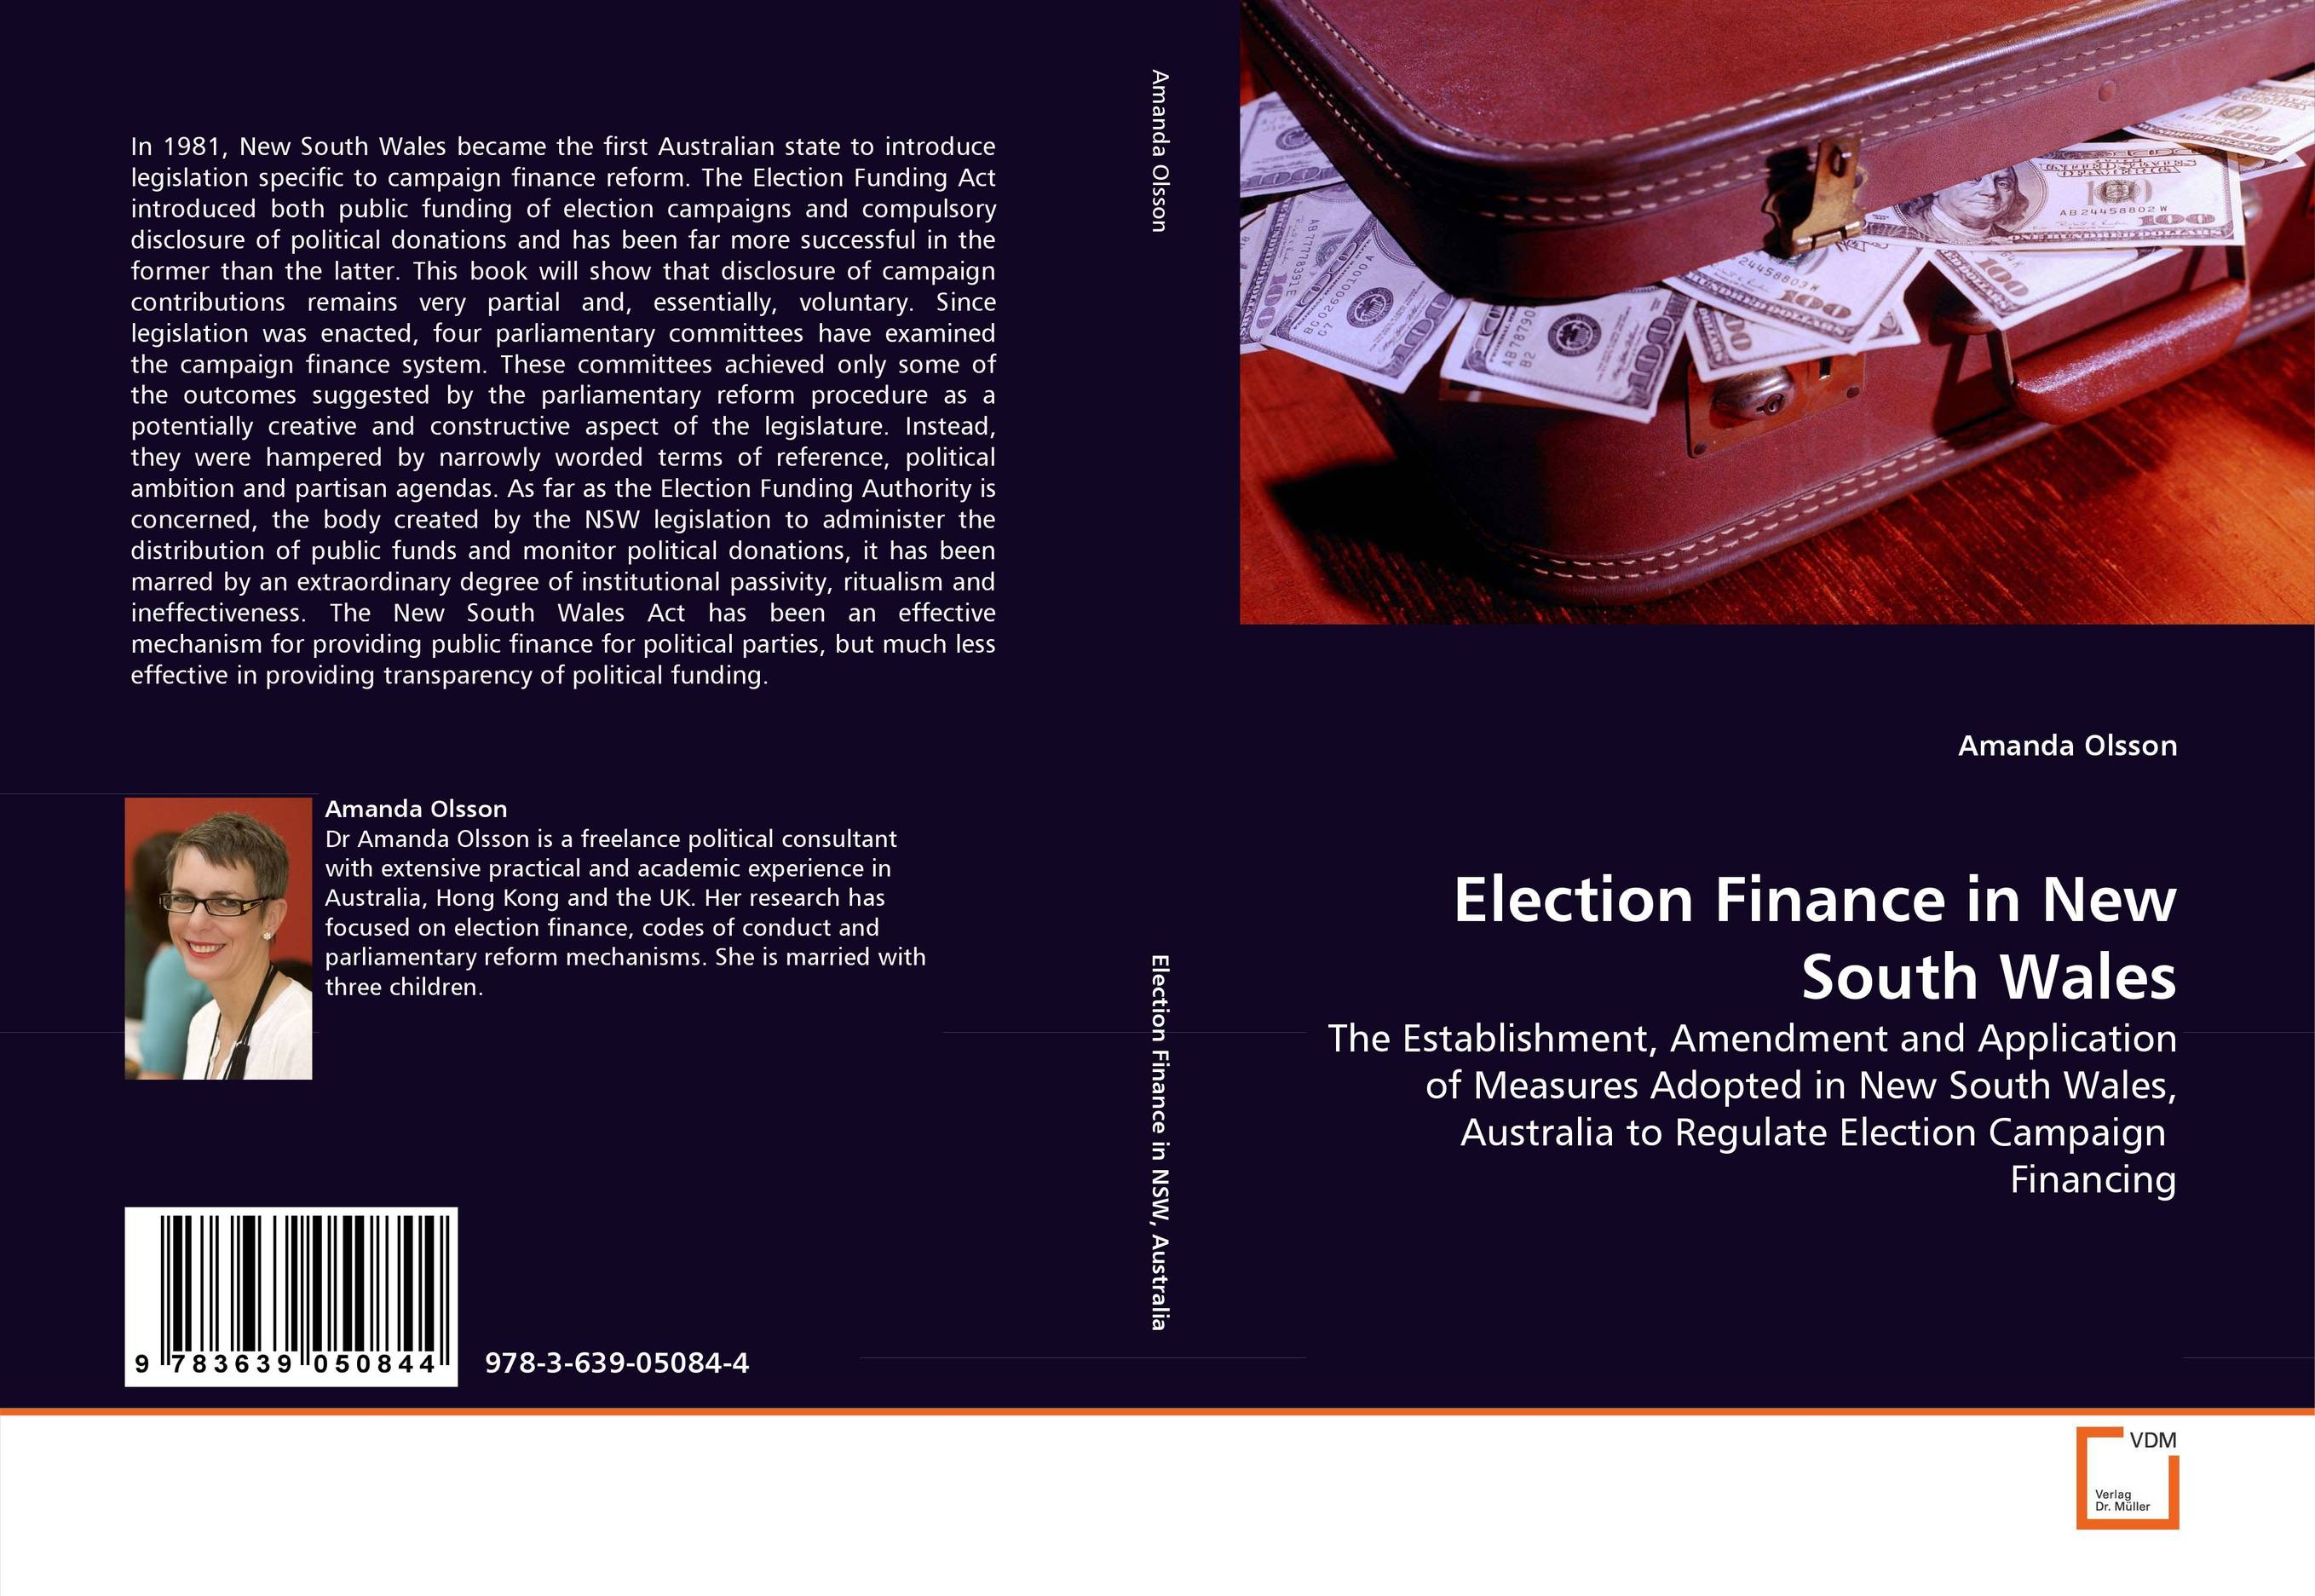 an introduction to the campaign financing of elections